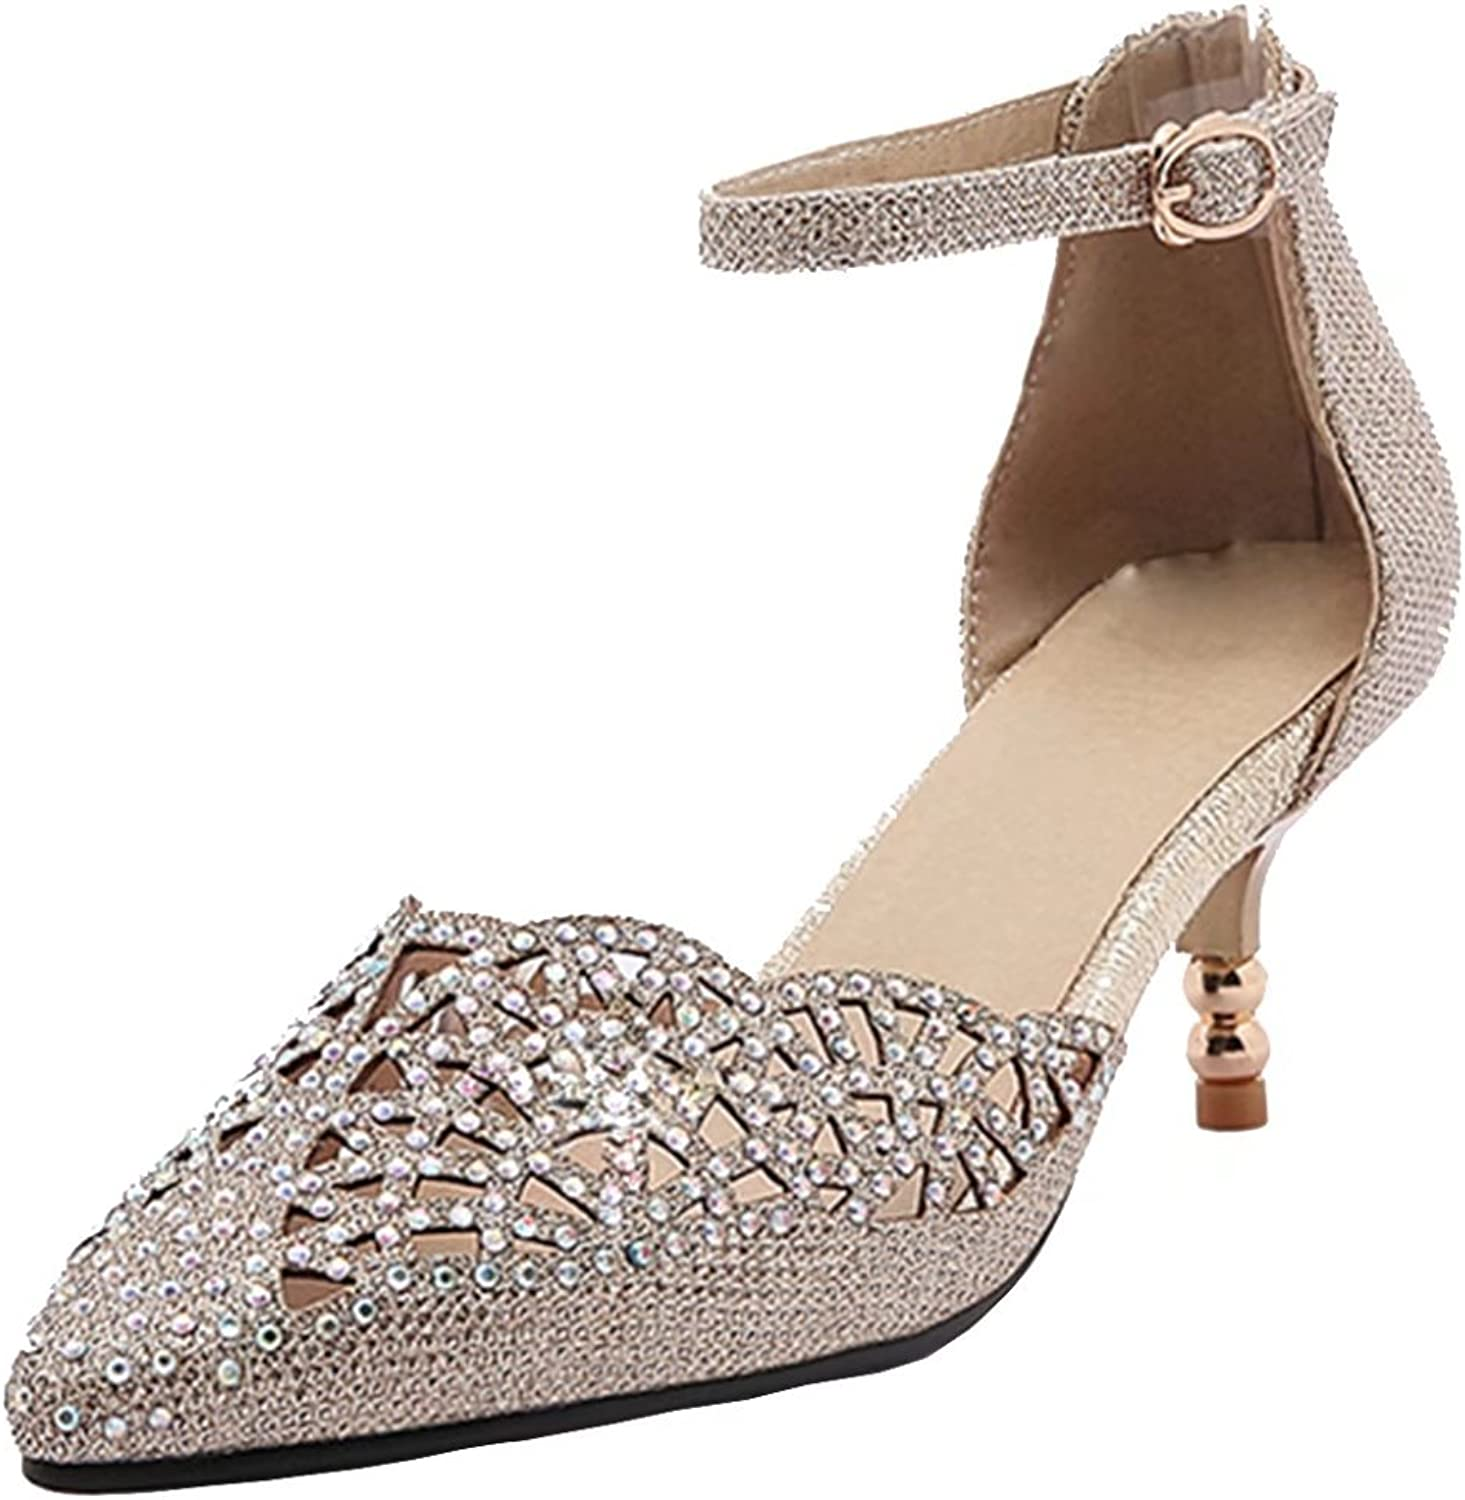 AIYOUMEI Women's Pointed Toe Glitter Kitten Heel Pumps with Rhinestones Ankle Strap shoes